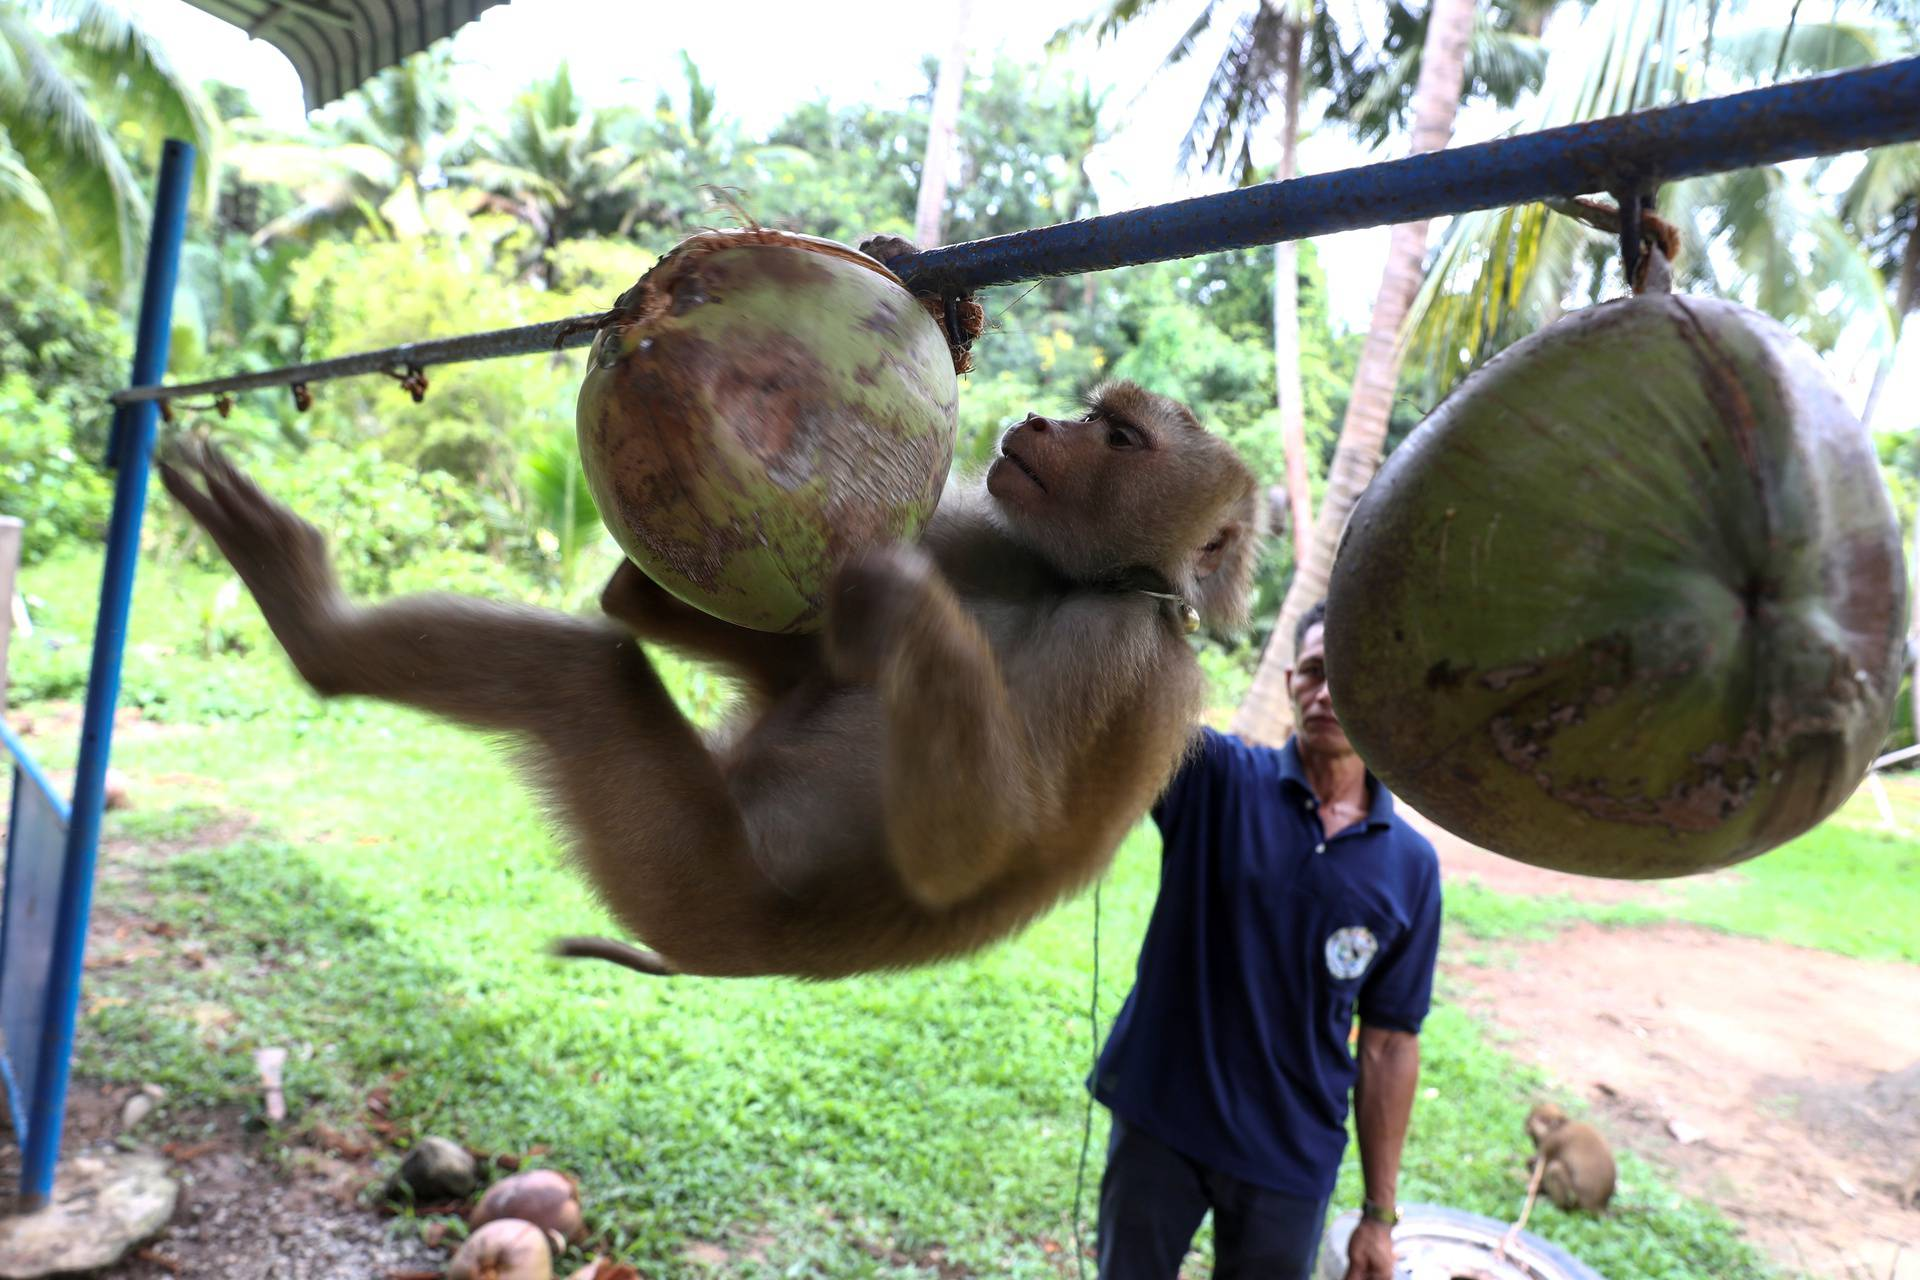 Nirun Wongwanich, 52, a monkey trainer, trains a monkey during a training session at a monkey school for coconut harvest in Surat Thani province